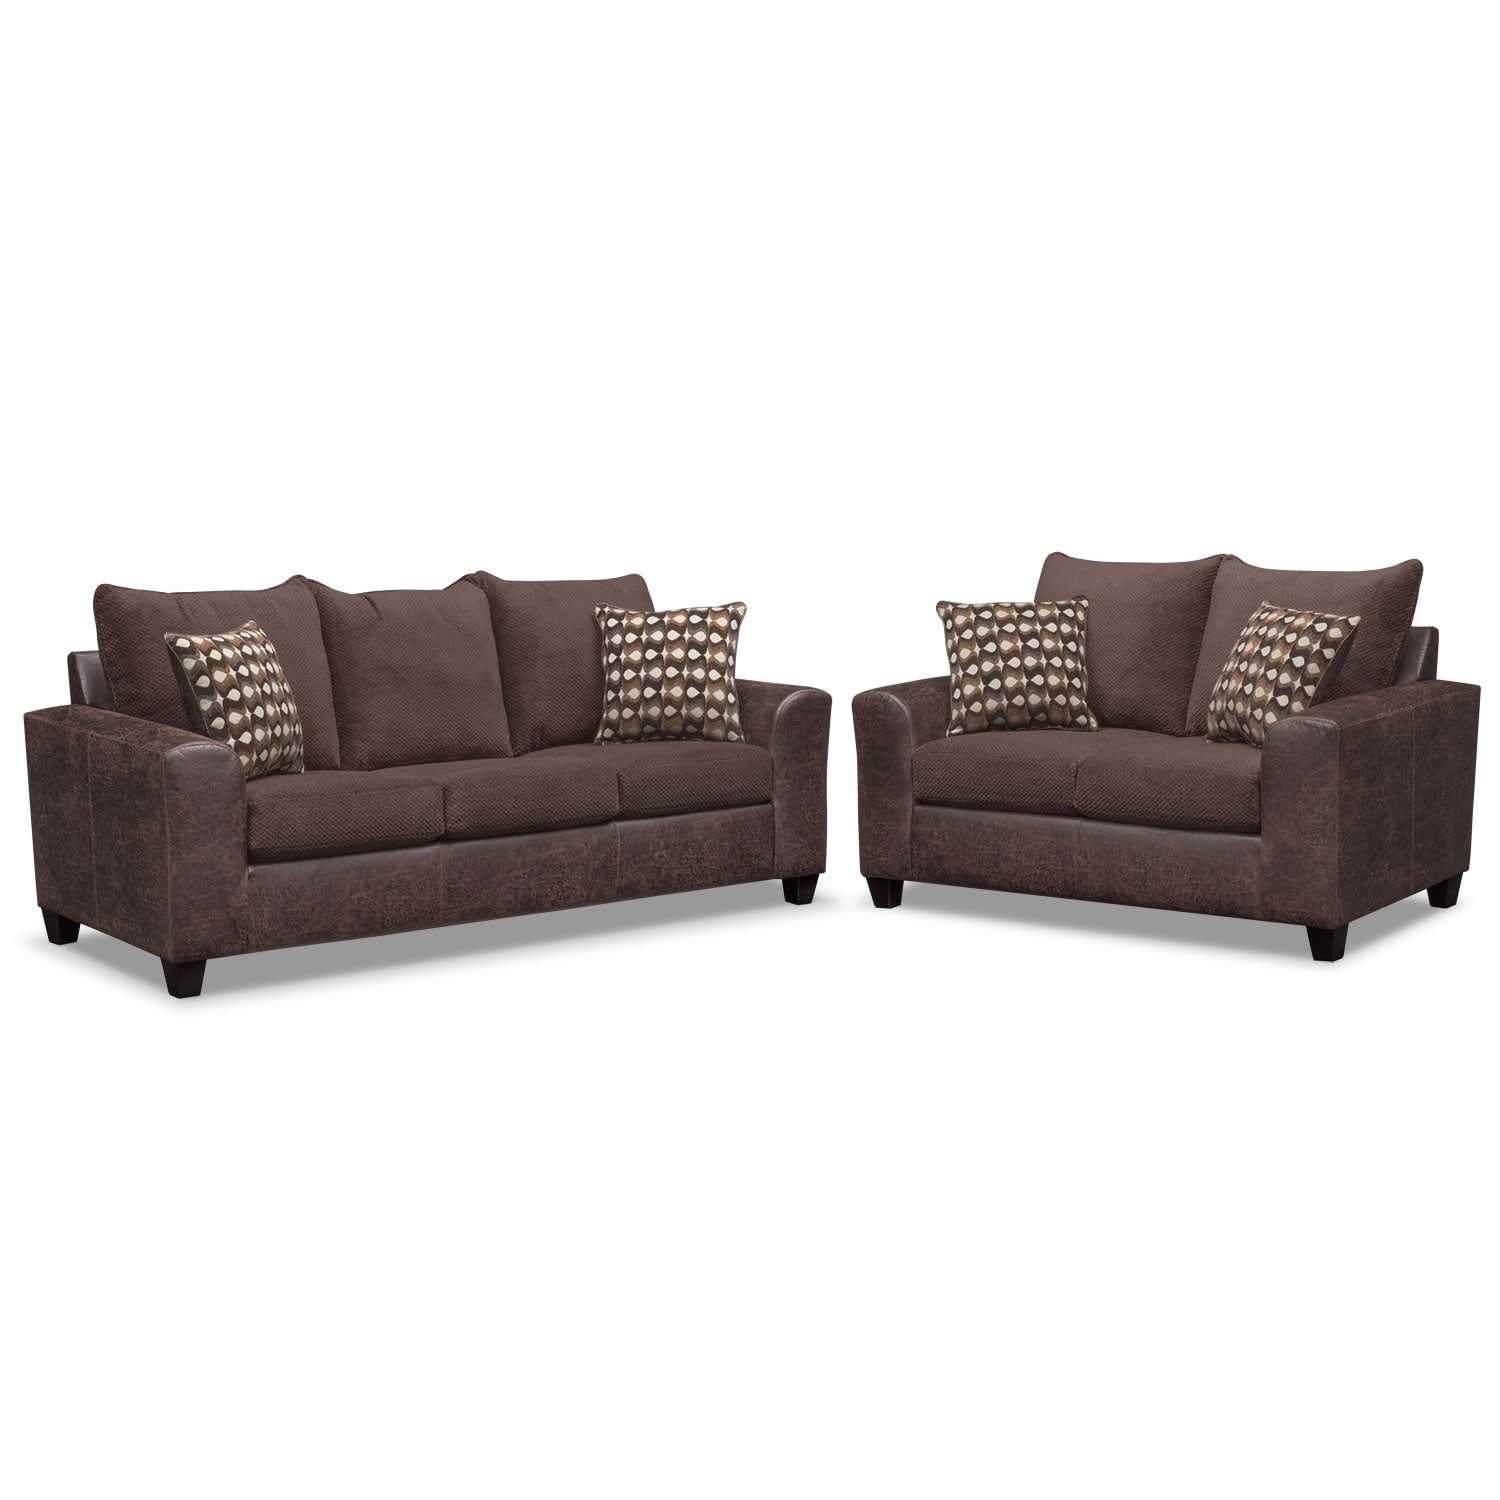 Living Room Furniture - Brando Sofa and Loveseat Set